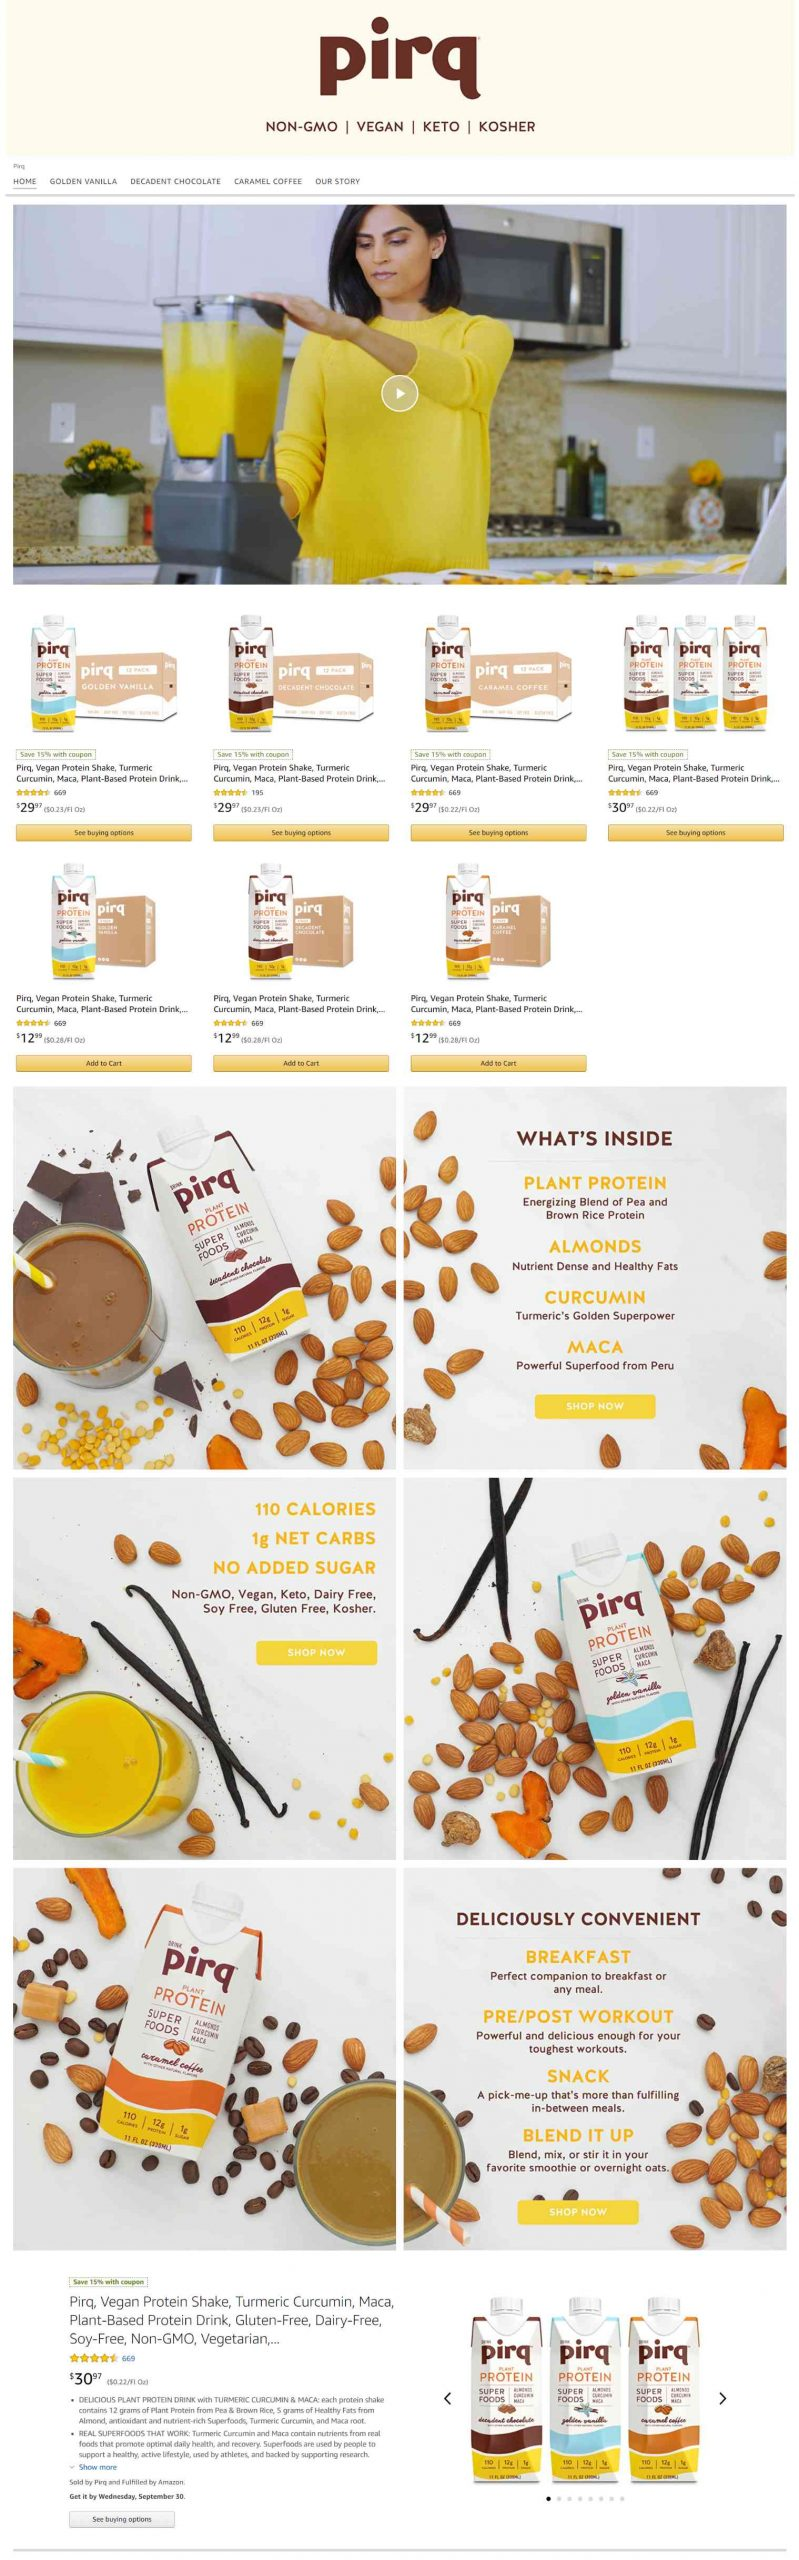 Amazon Storefront Example of Pirq's home page